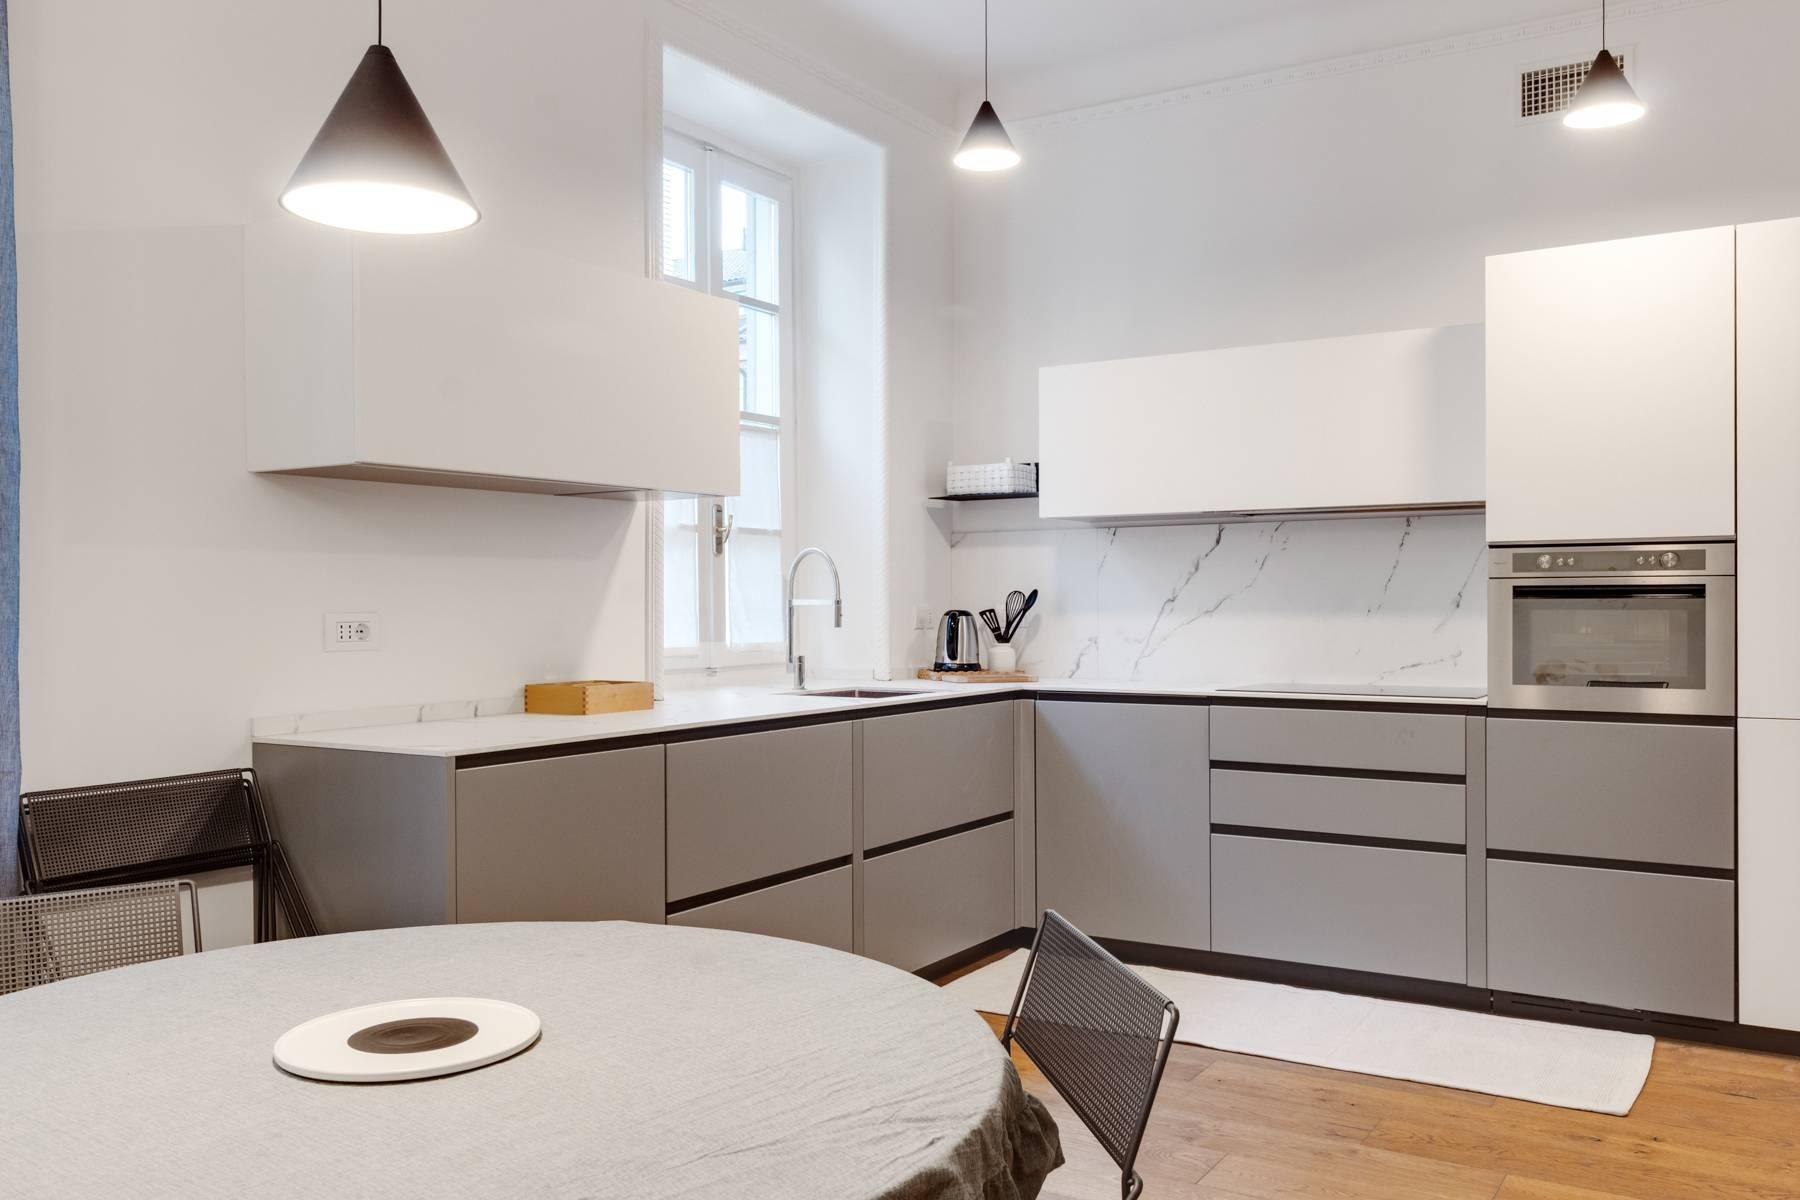 New apartment fully furnished in the center of Turin - 18